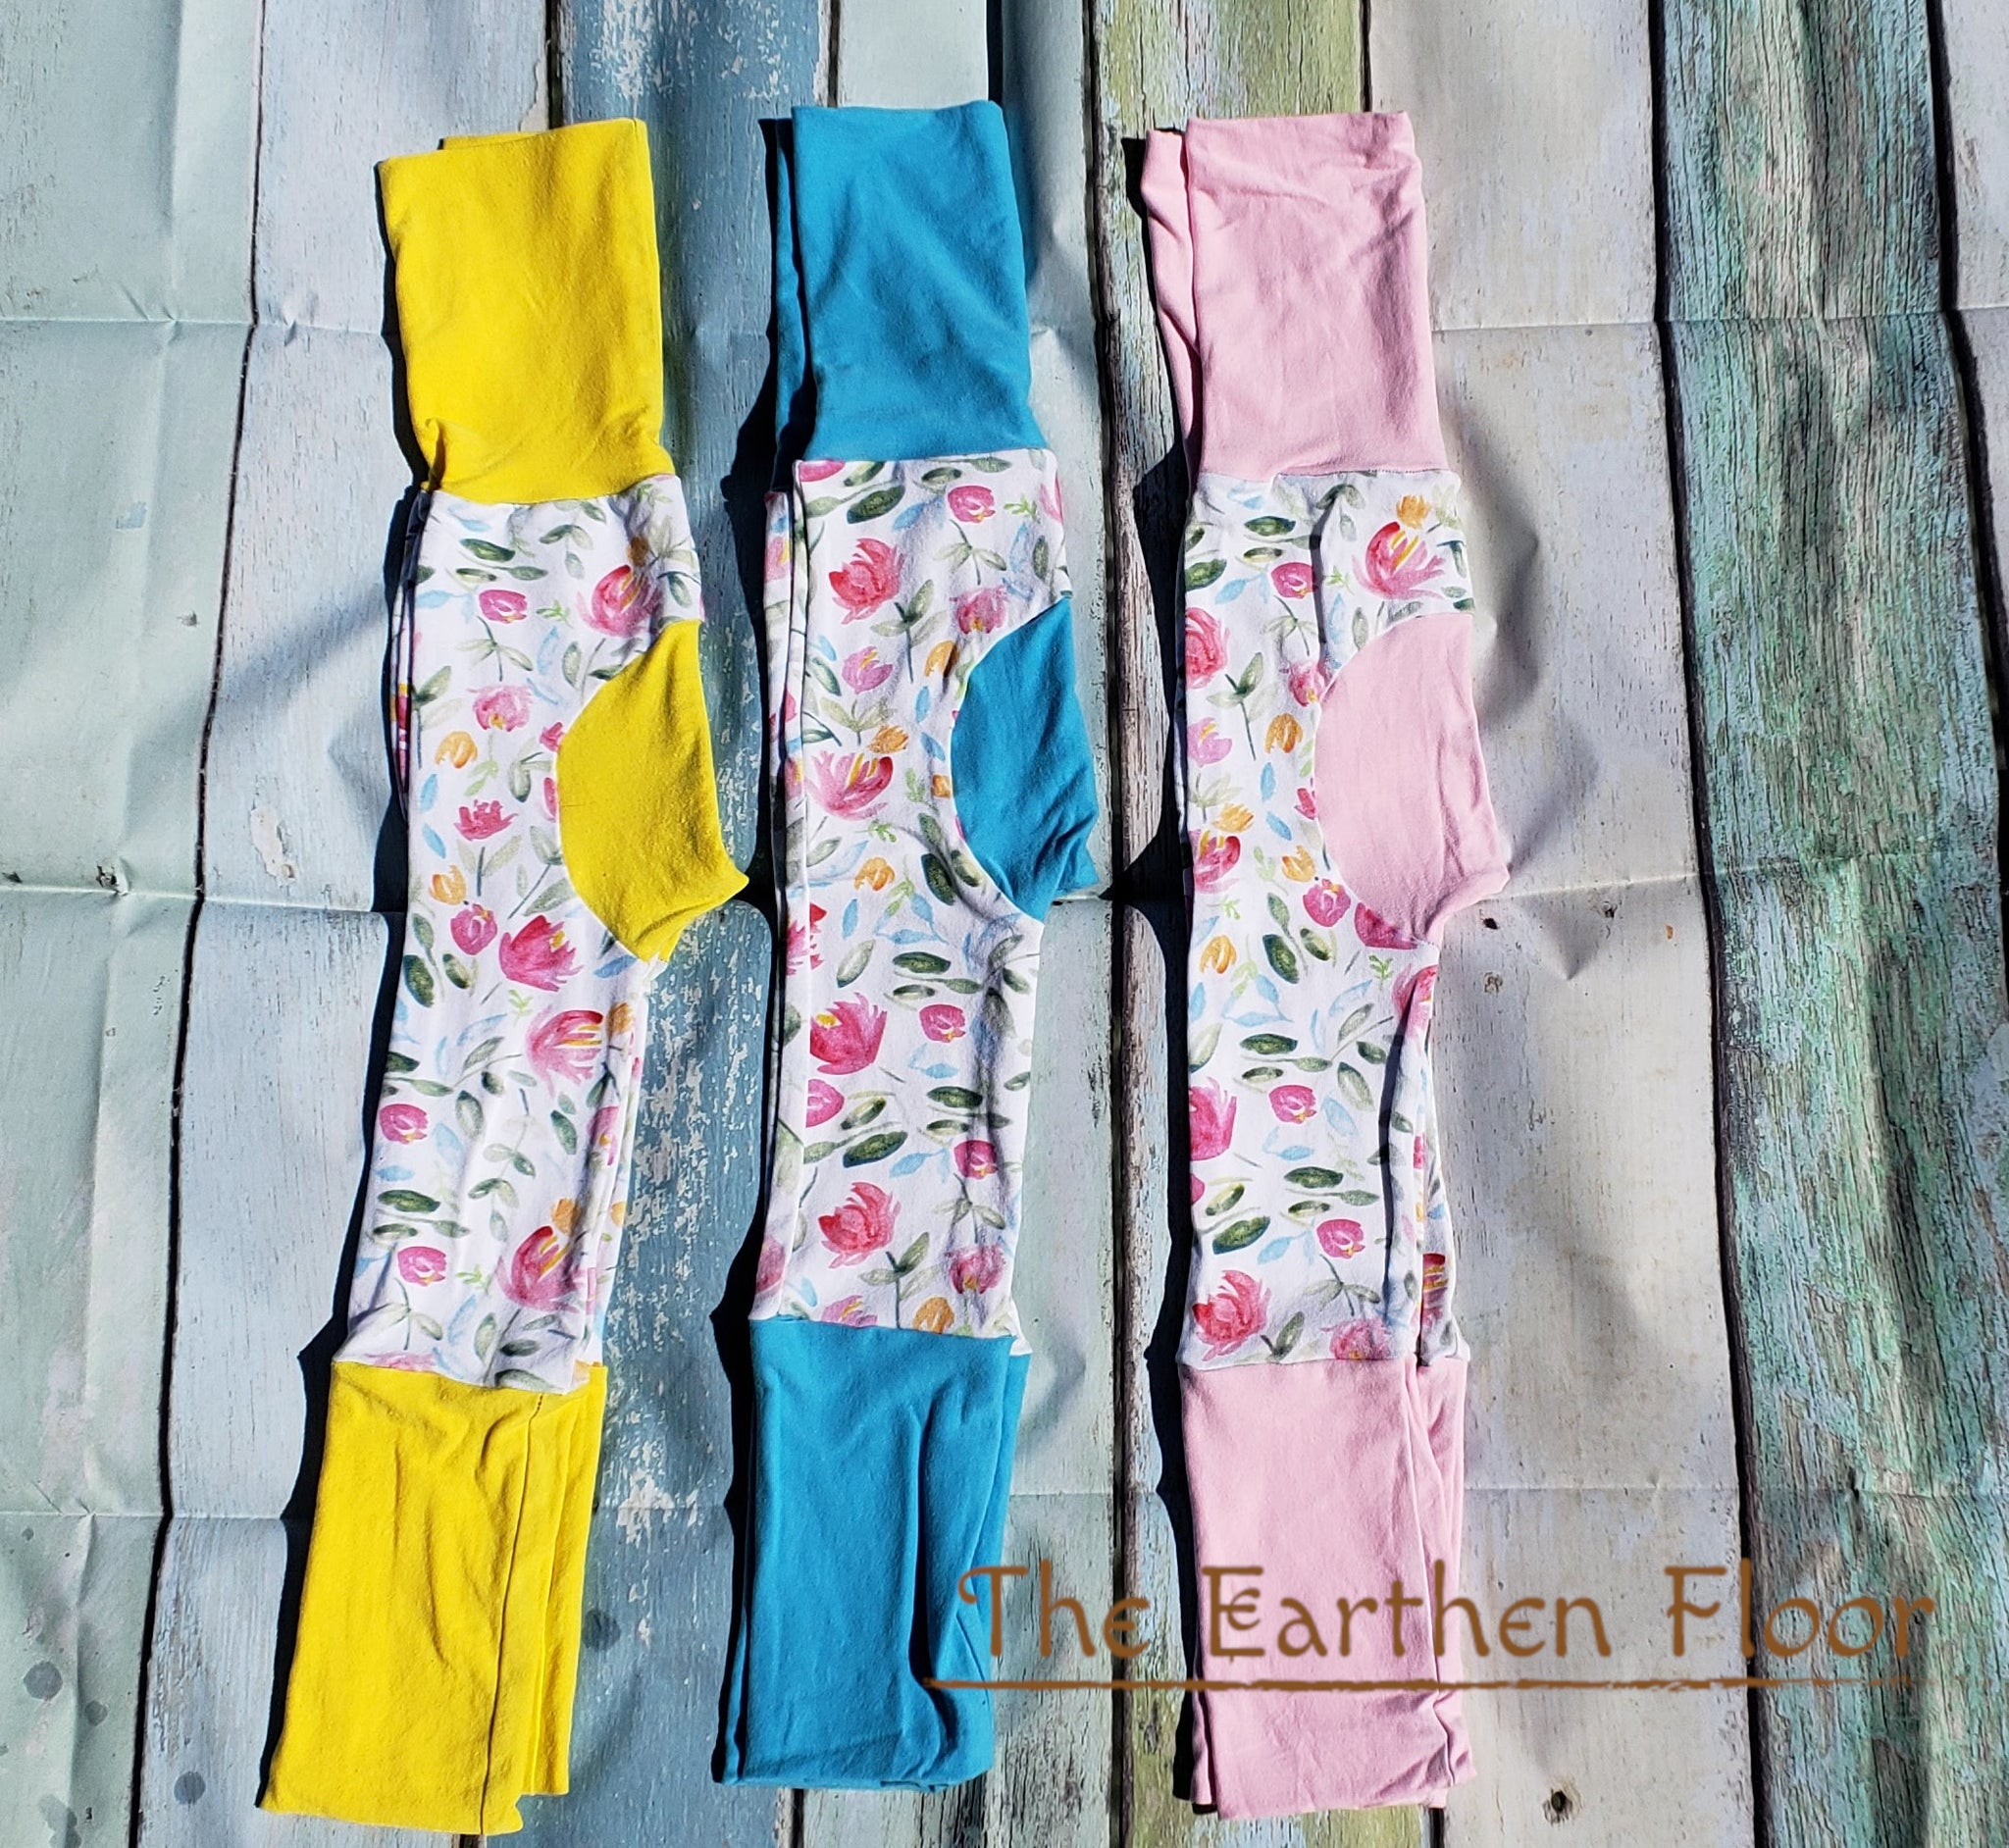 Earthen Floor - Floral Grow-With-Me Pants